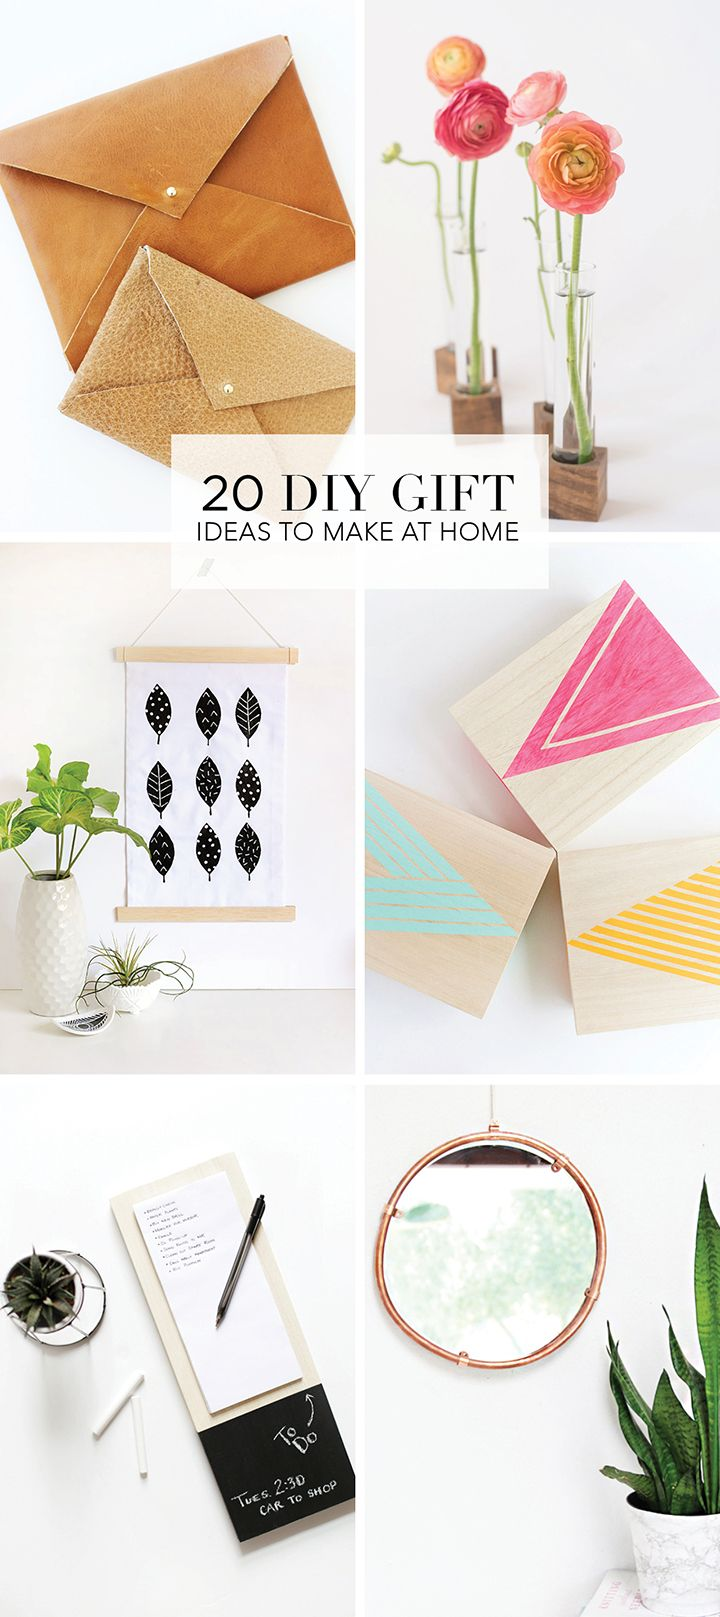 We've rounded up 20 of our favorite DIY Holiday Gift Ideas for you. Everyone loves a handmade gifts, so give one of these DIY projects a try | www.homeology.co.za